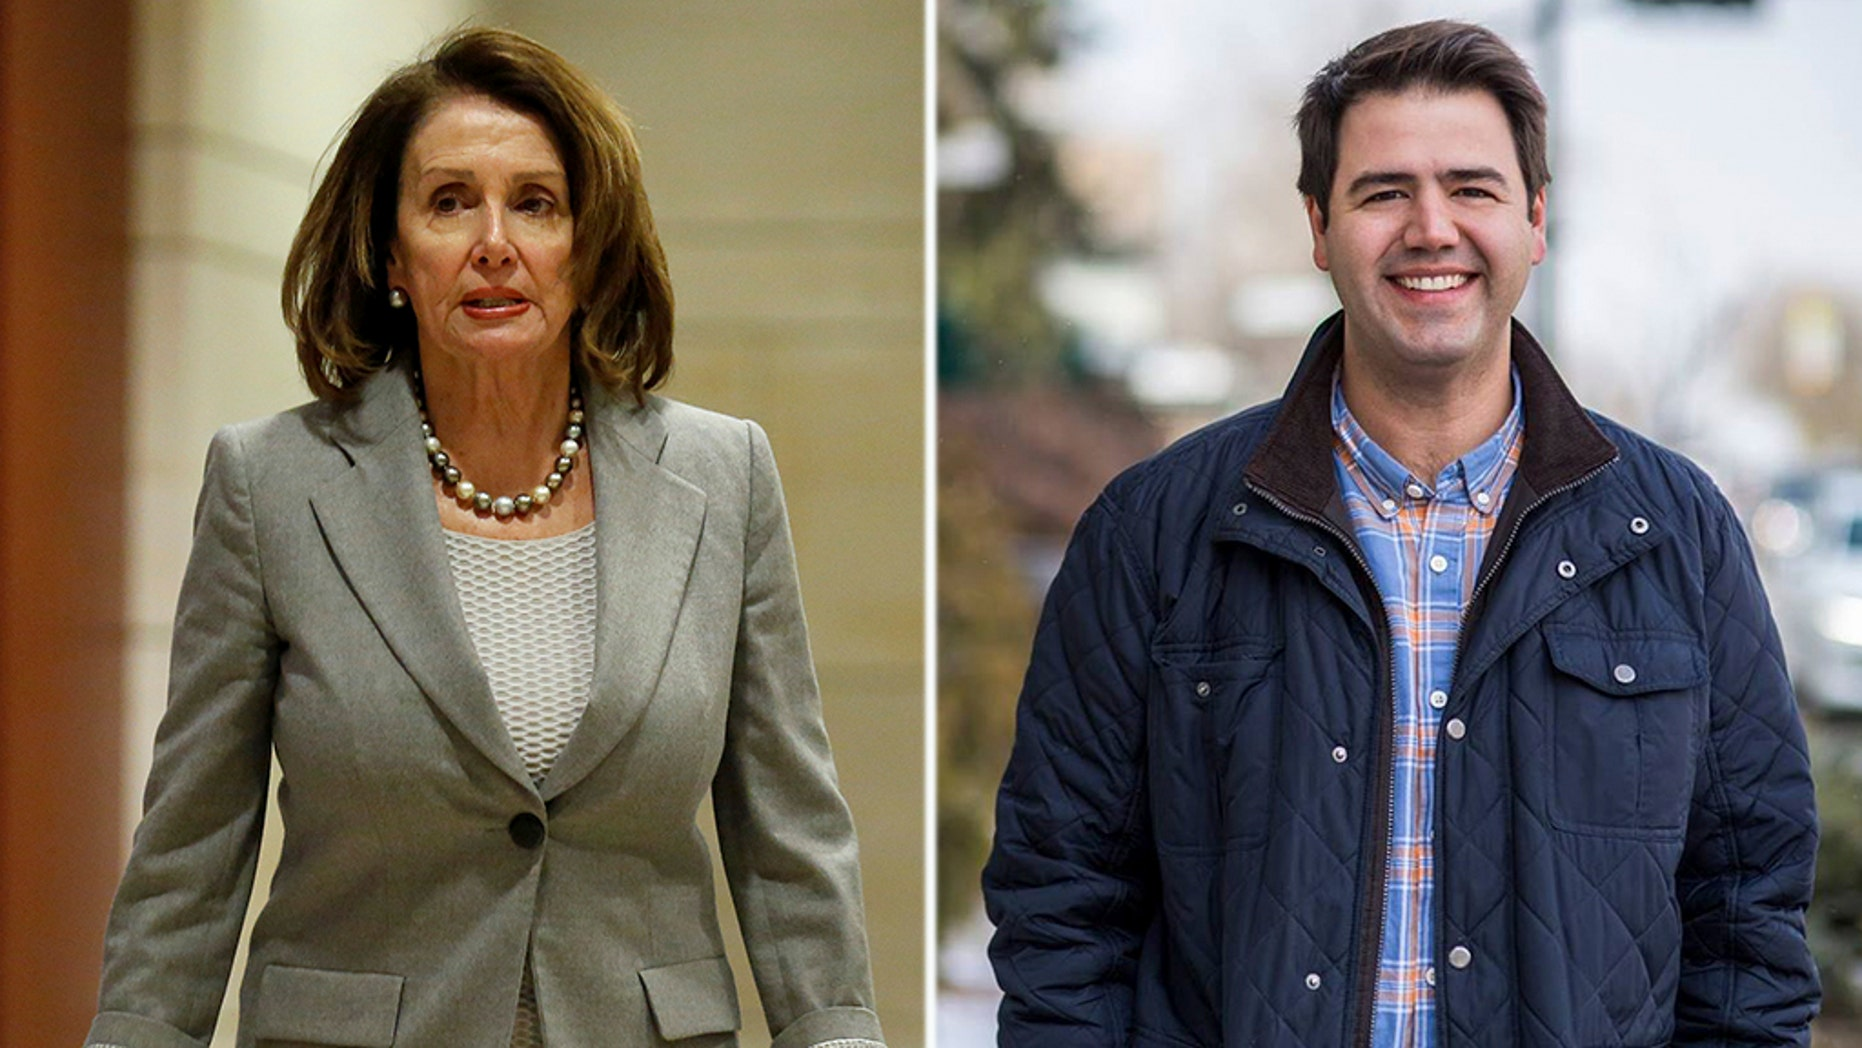 """Ohio Democratic congressional candidate Danny O'Connor has responded to questions about whether he would support Nancy Pelosi for speaker by saying he wanted """"new leadership"""" instead."""